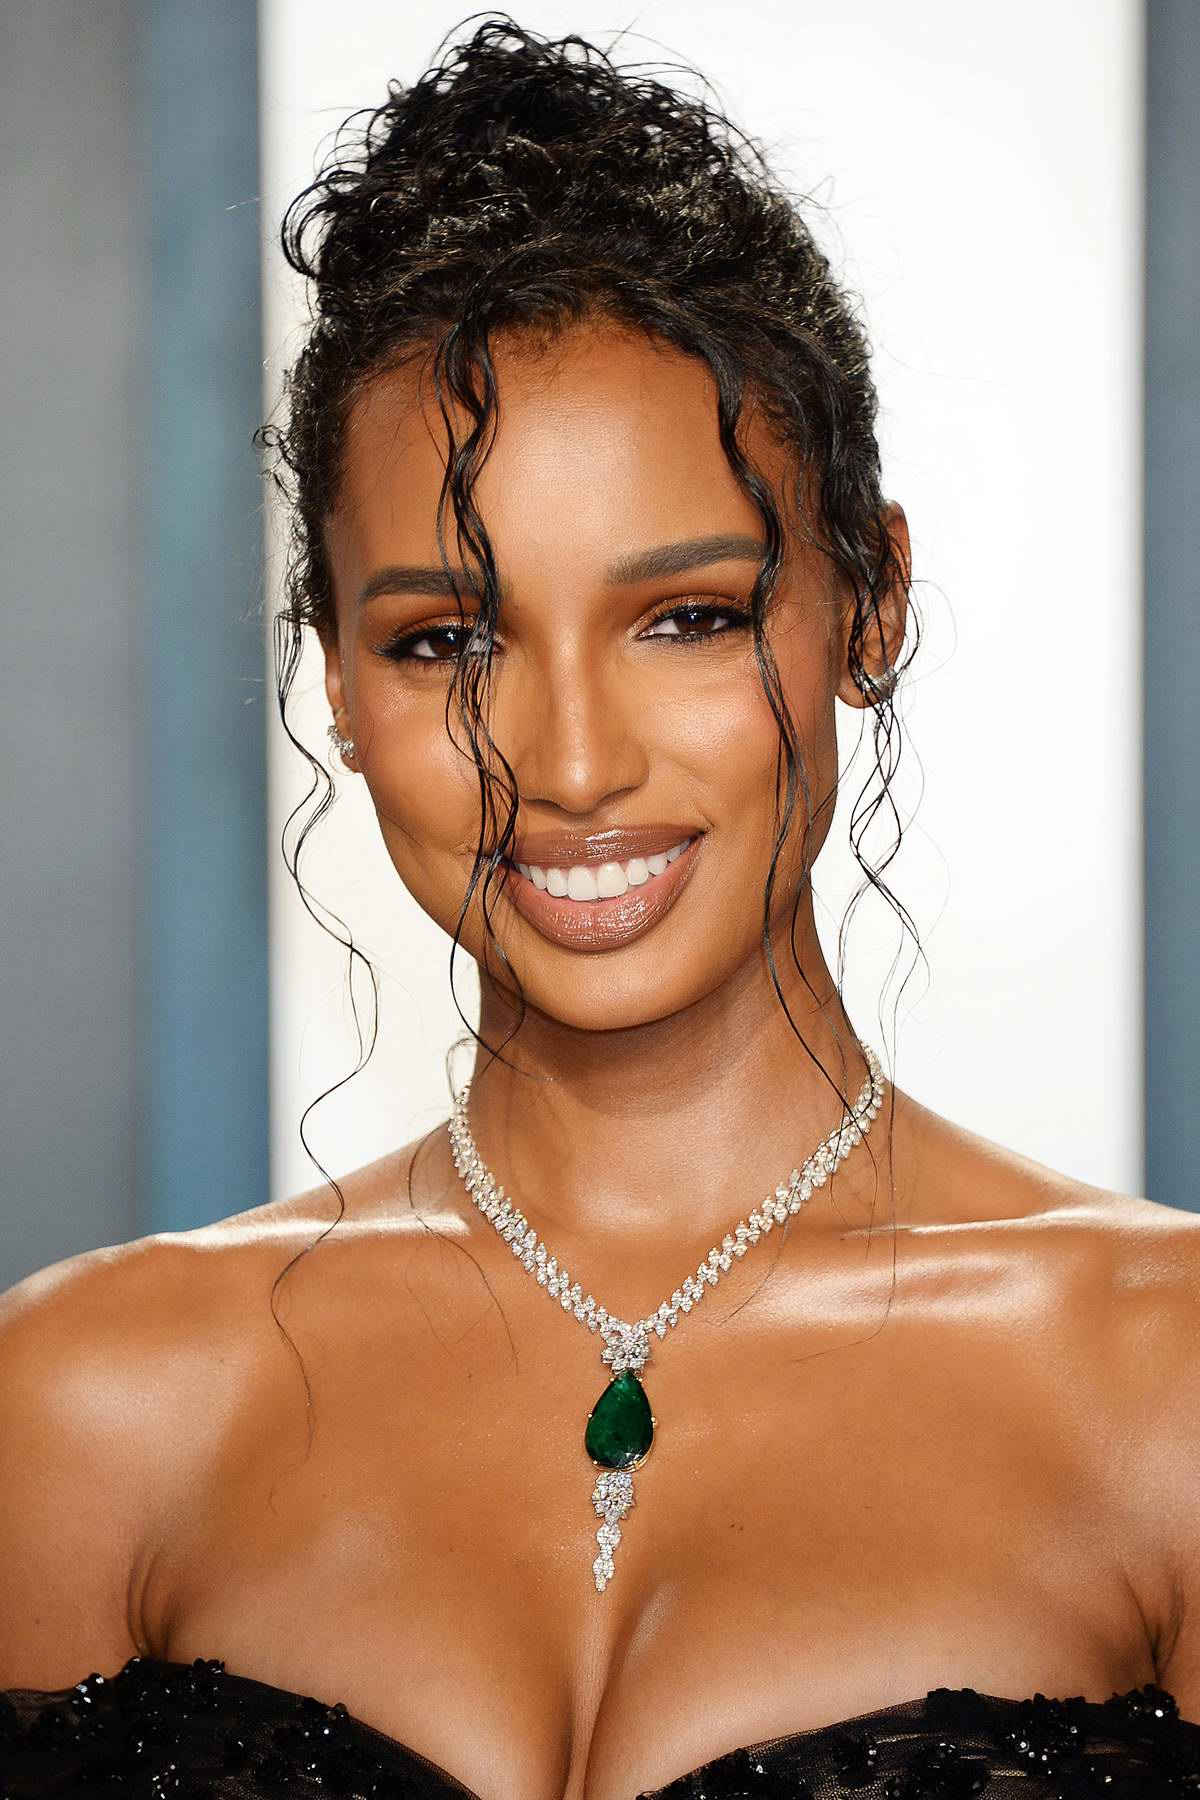 Jasmine Tookes Attends The 2020 Vanity Fair Oscar Party At Wallis Annenberg Center For The Performing Arts In Los Angeles 090220 2